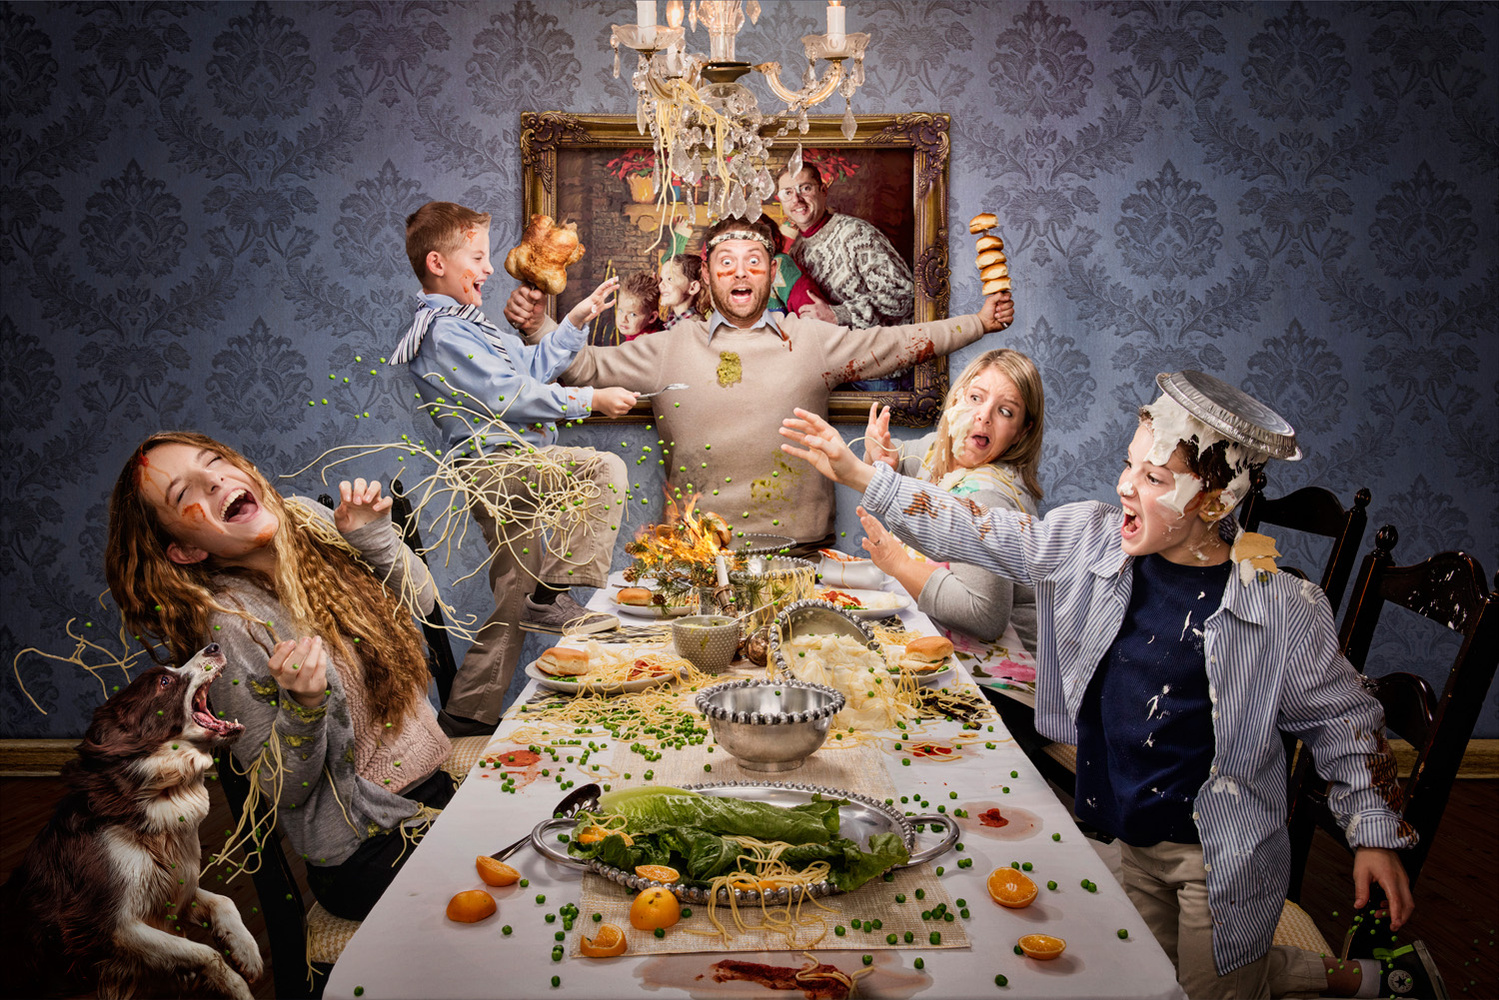 Friday Night Food Fight by Dan McClanahan